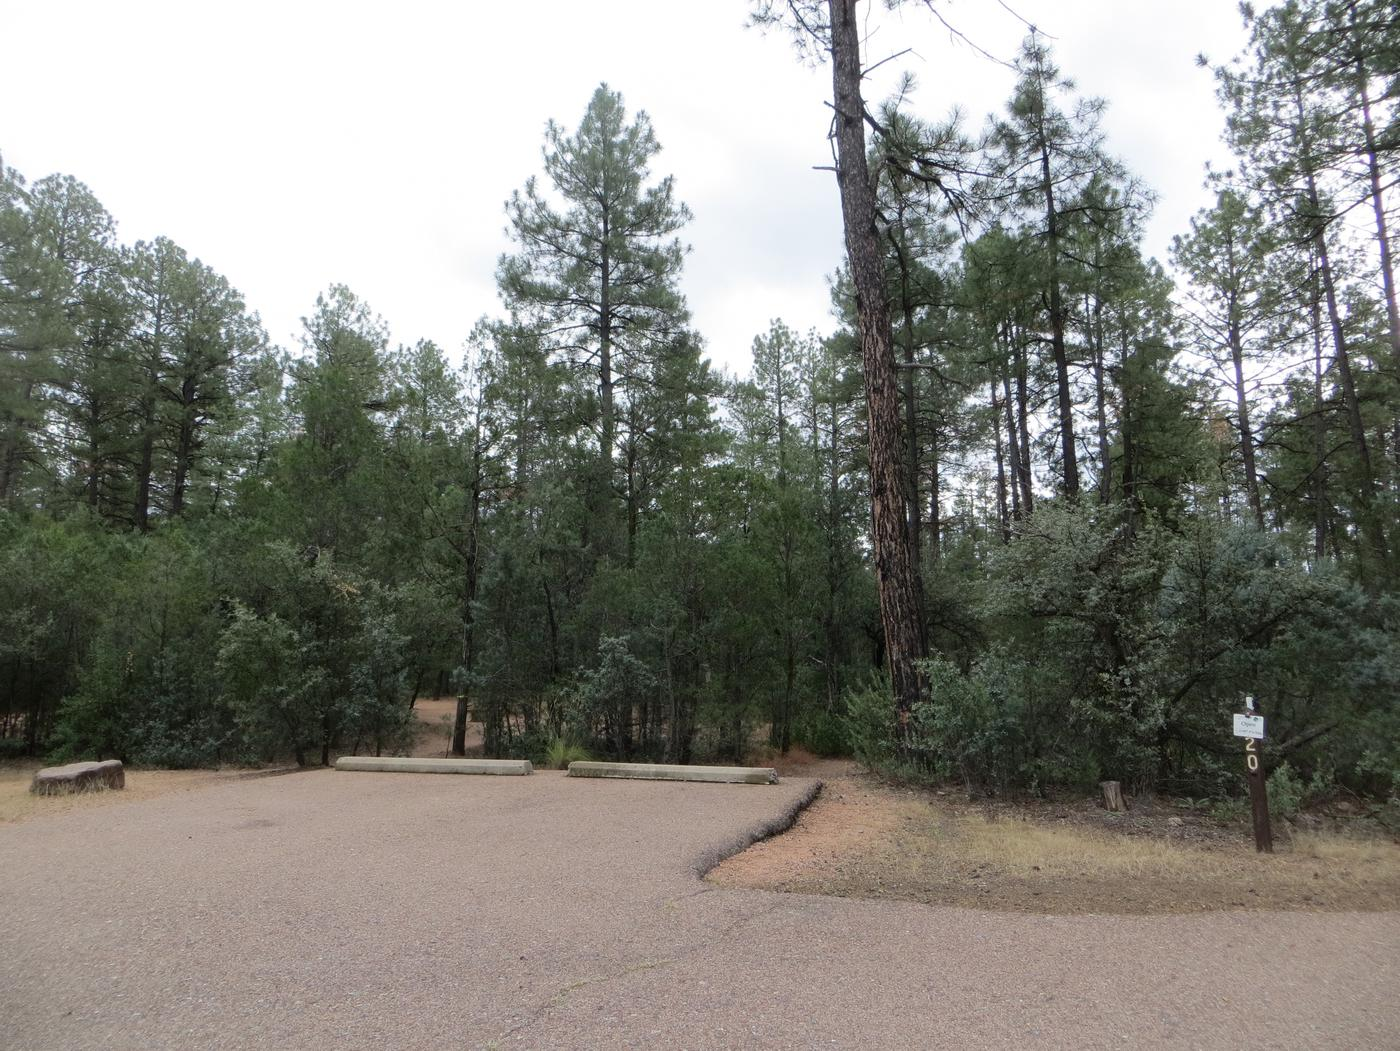 Houston Mesa, Black Bear Loop site #20 featuring parking and entrance to the wooded site.